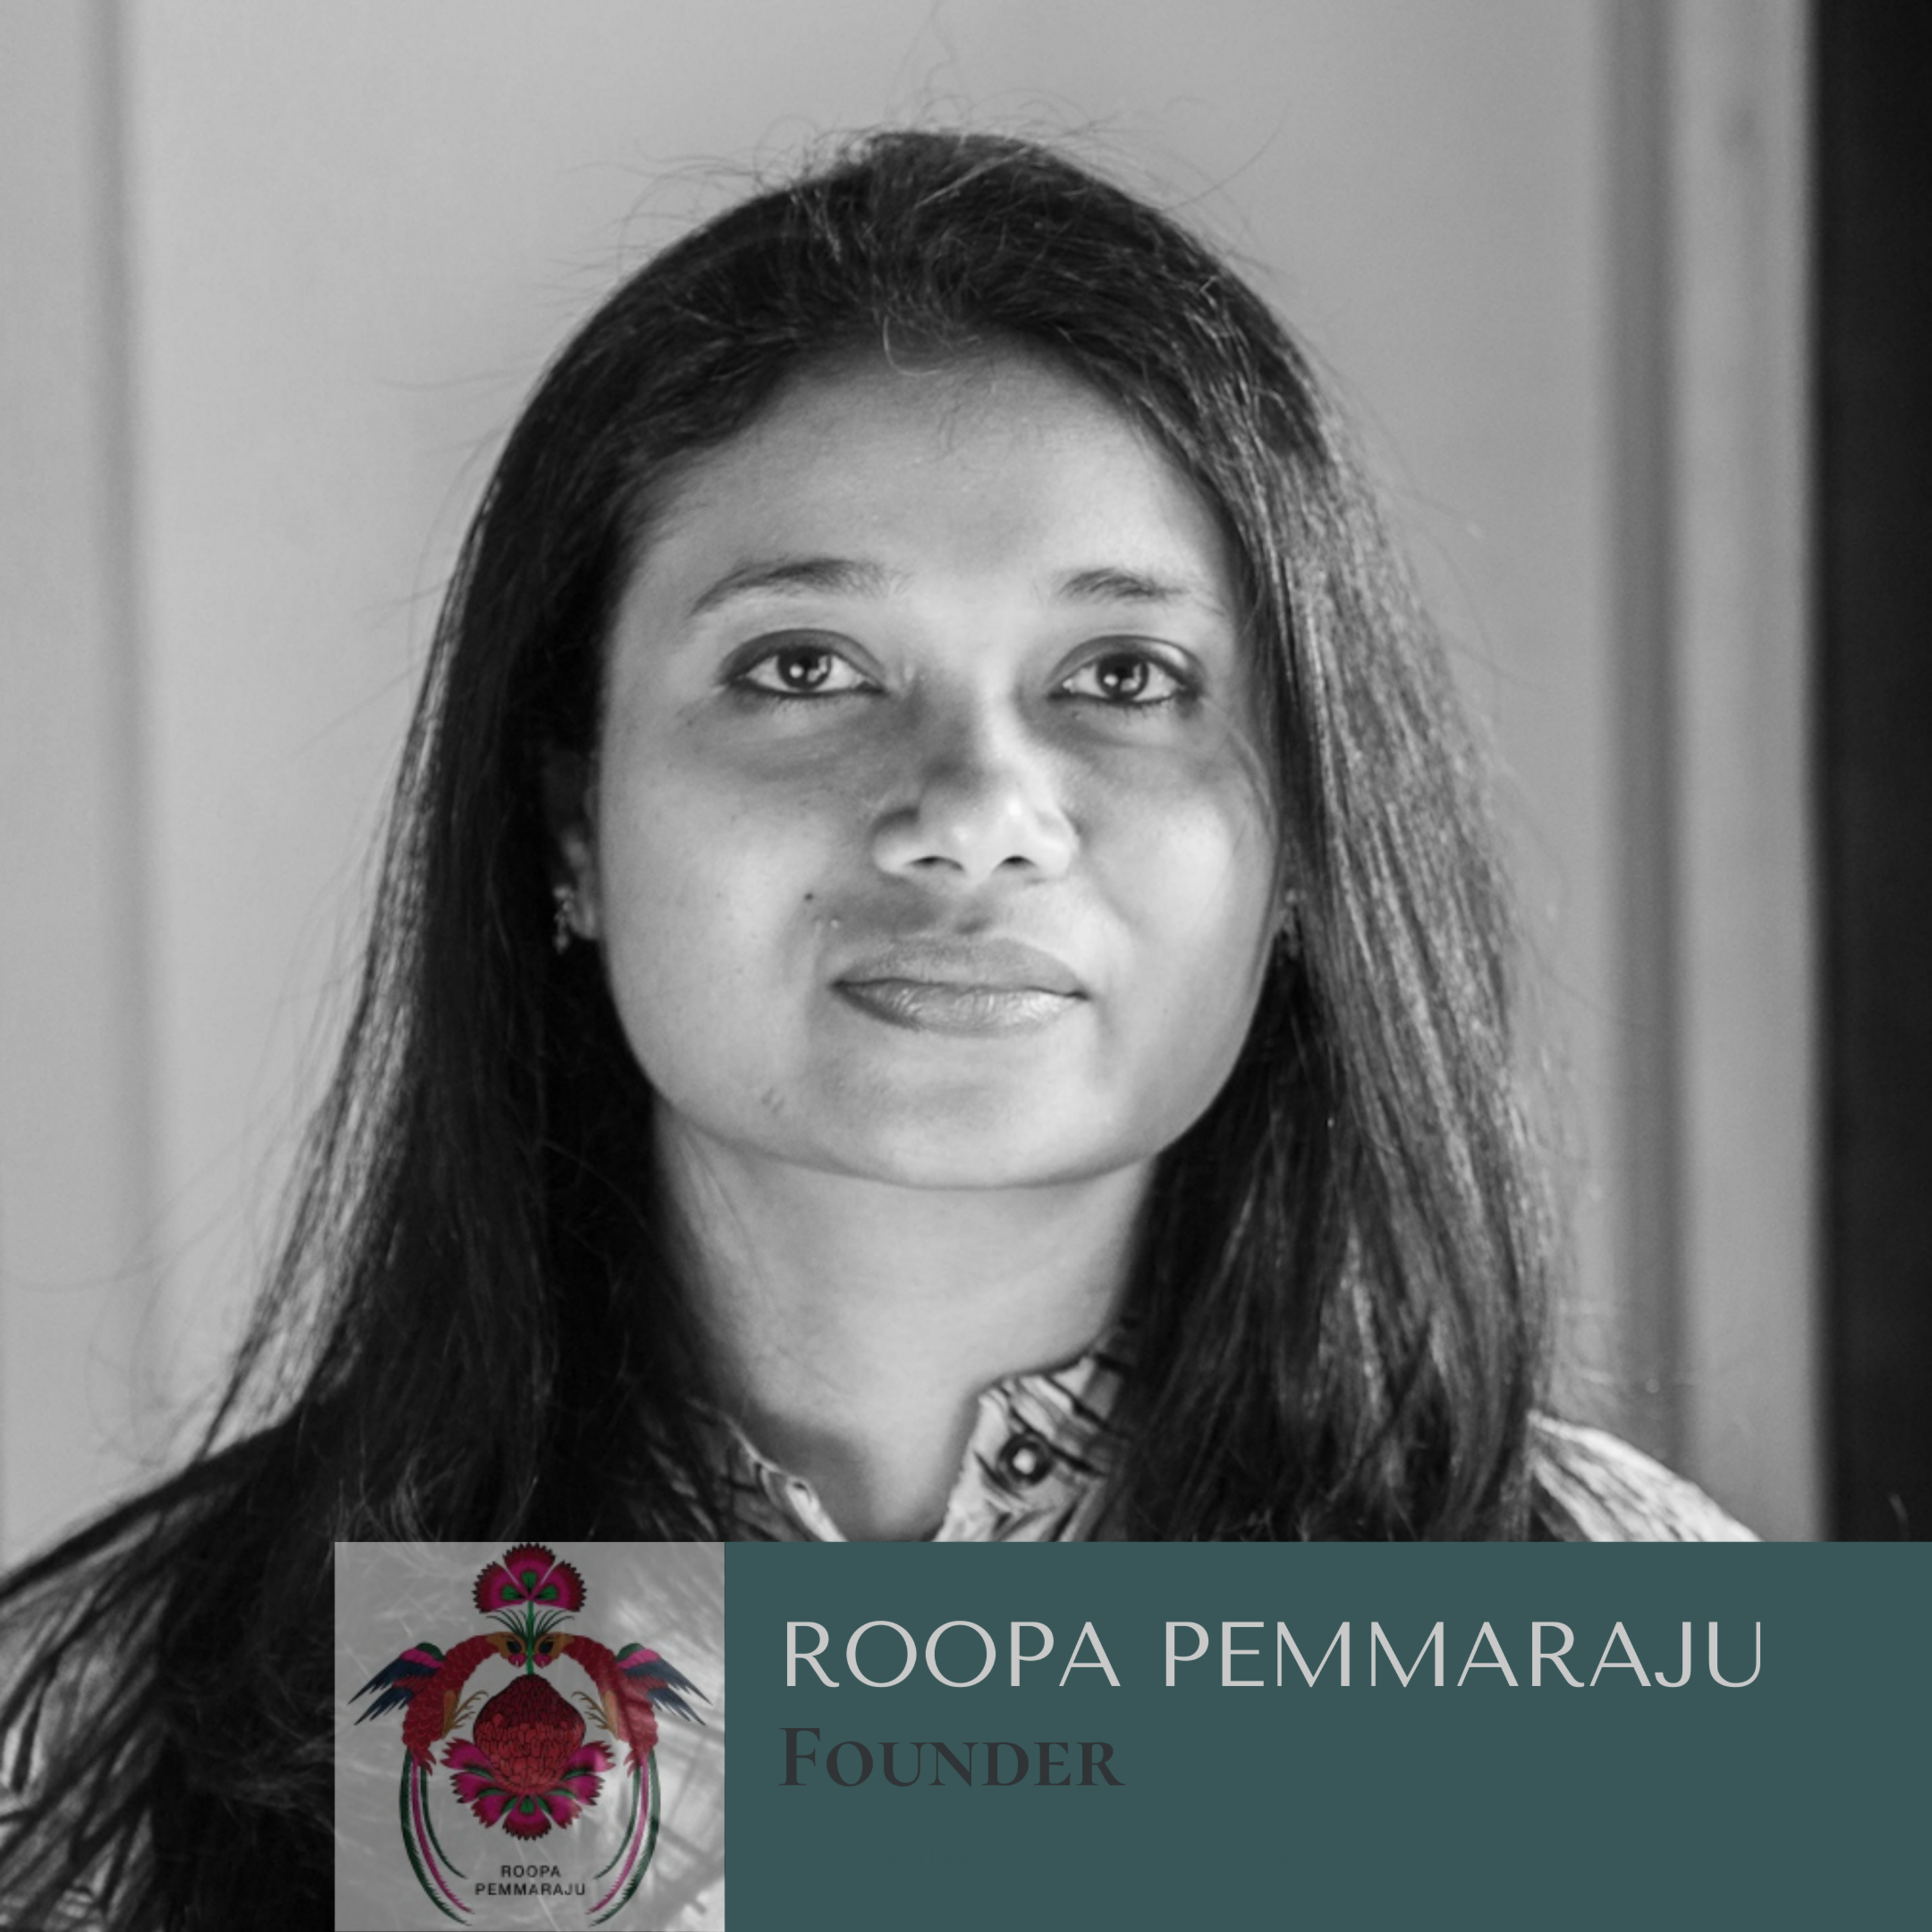 Roopa Pemmaraju, Founder, Sustainable Ethical Brand | Location: New York, US